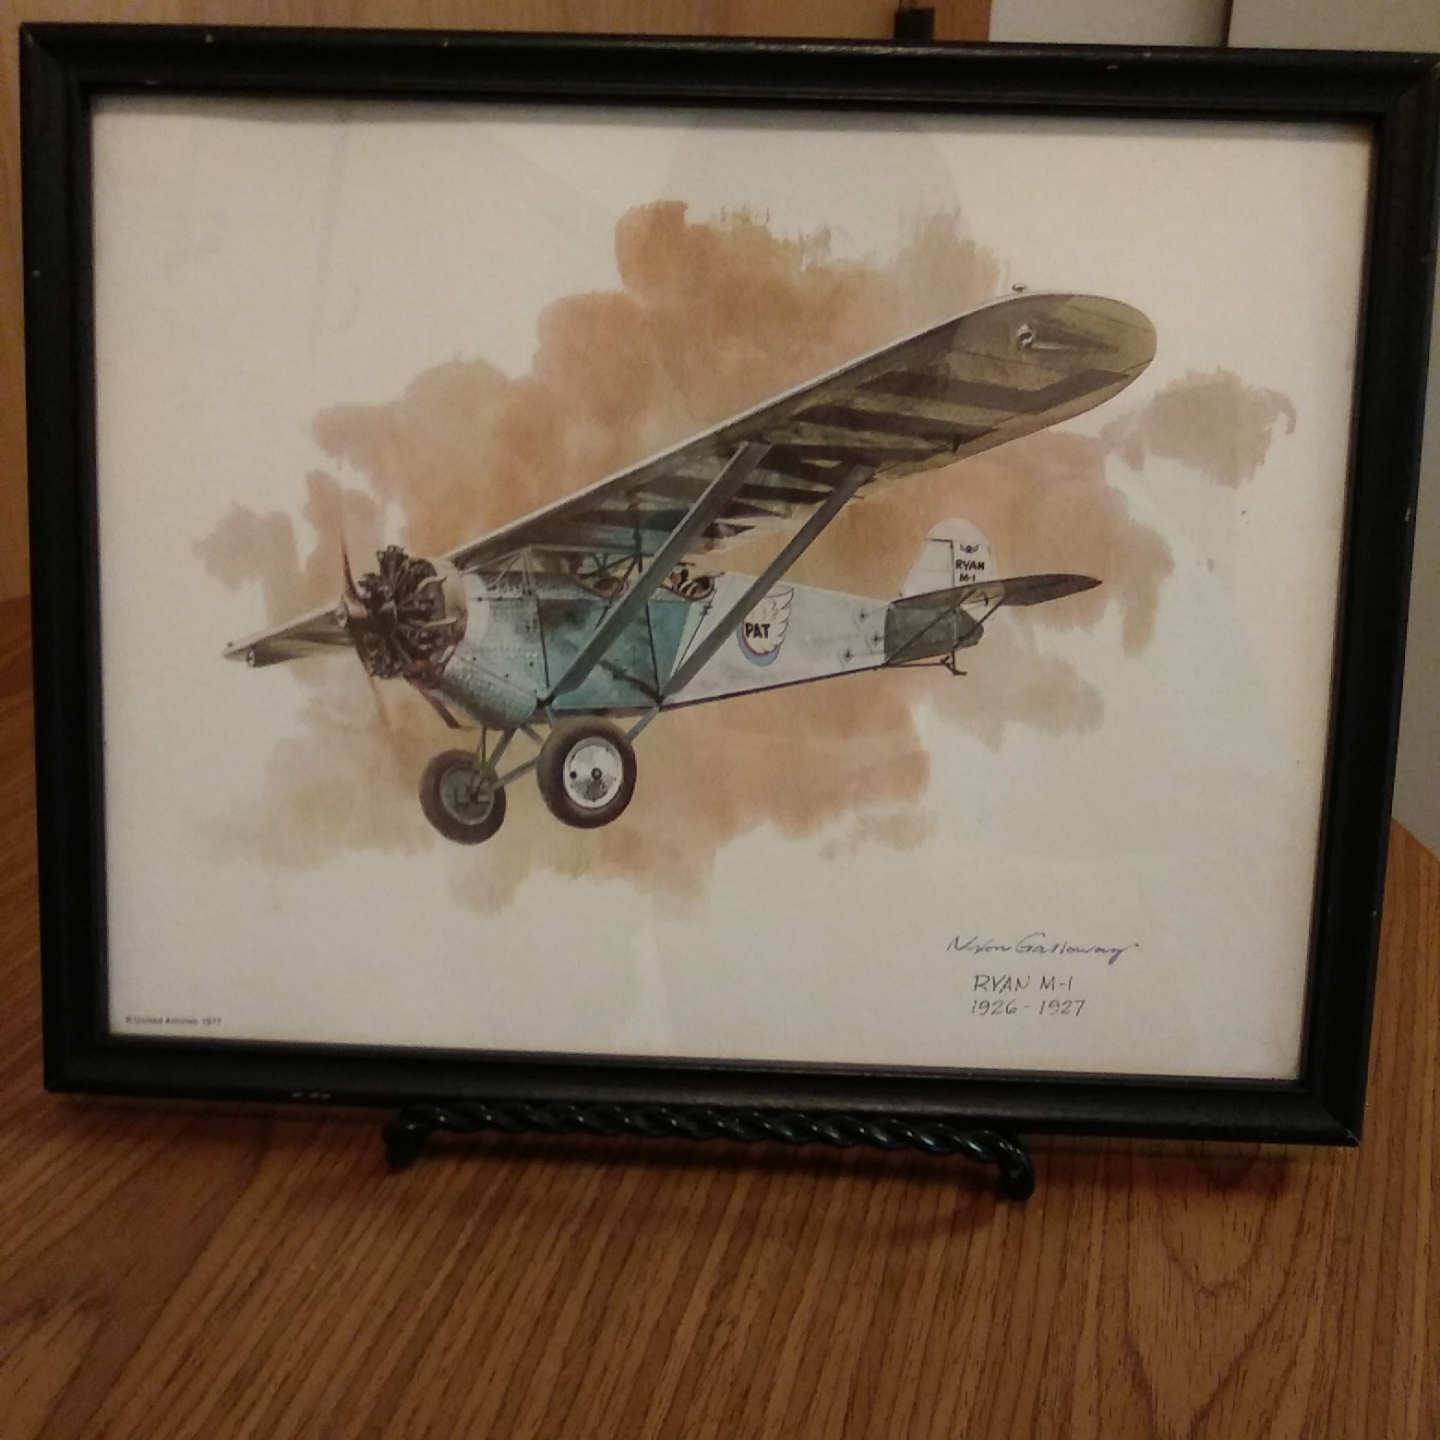 UNITED AIRLINES RYAN M-1 (1926-1927) VINTAGE FRAMED PRINT BY NIXON GALLOWAY Prin